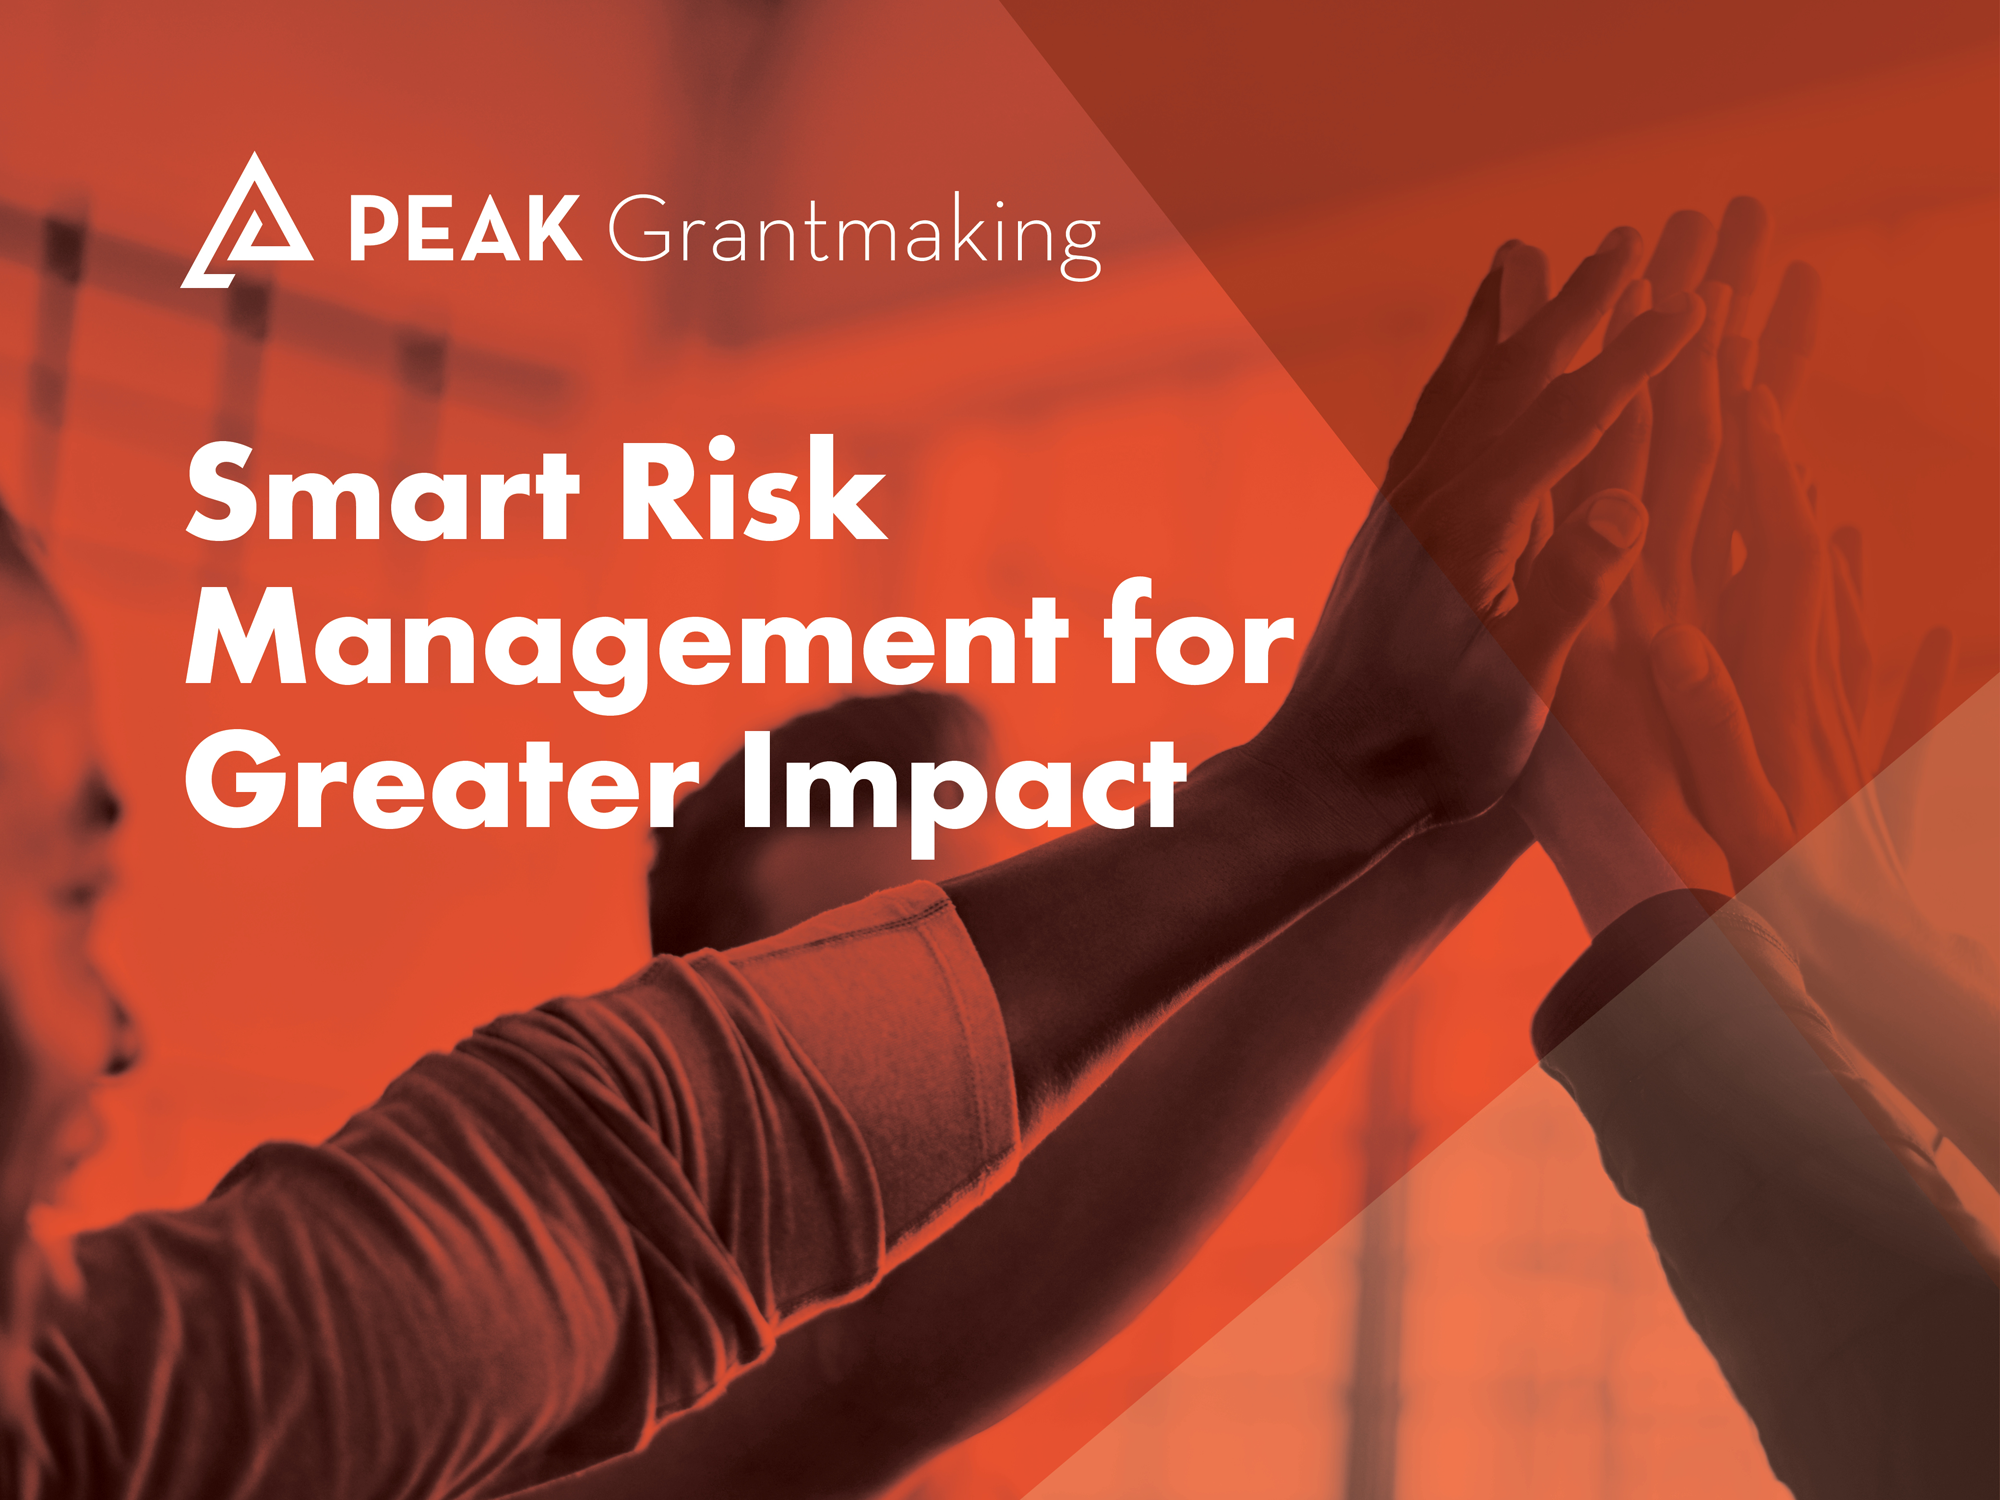 Smart Risk Management for Greater Impact